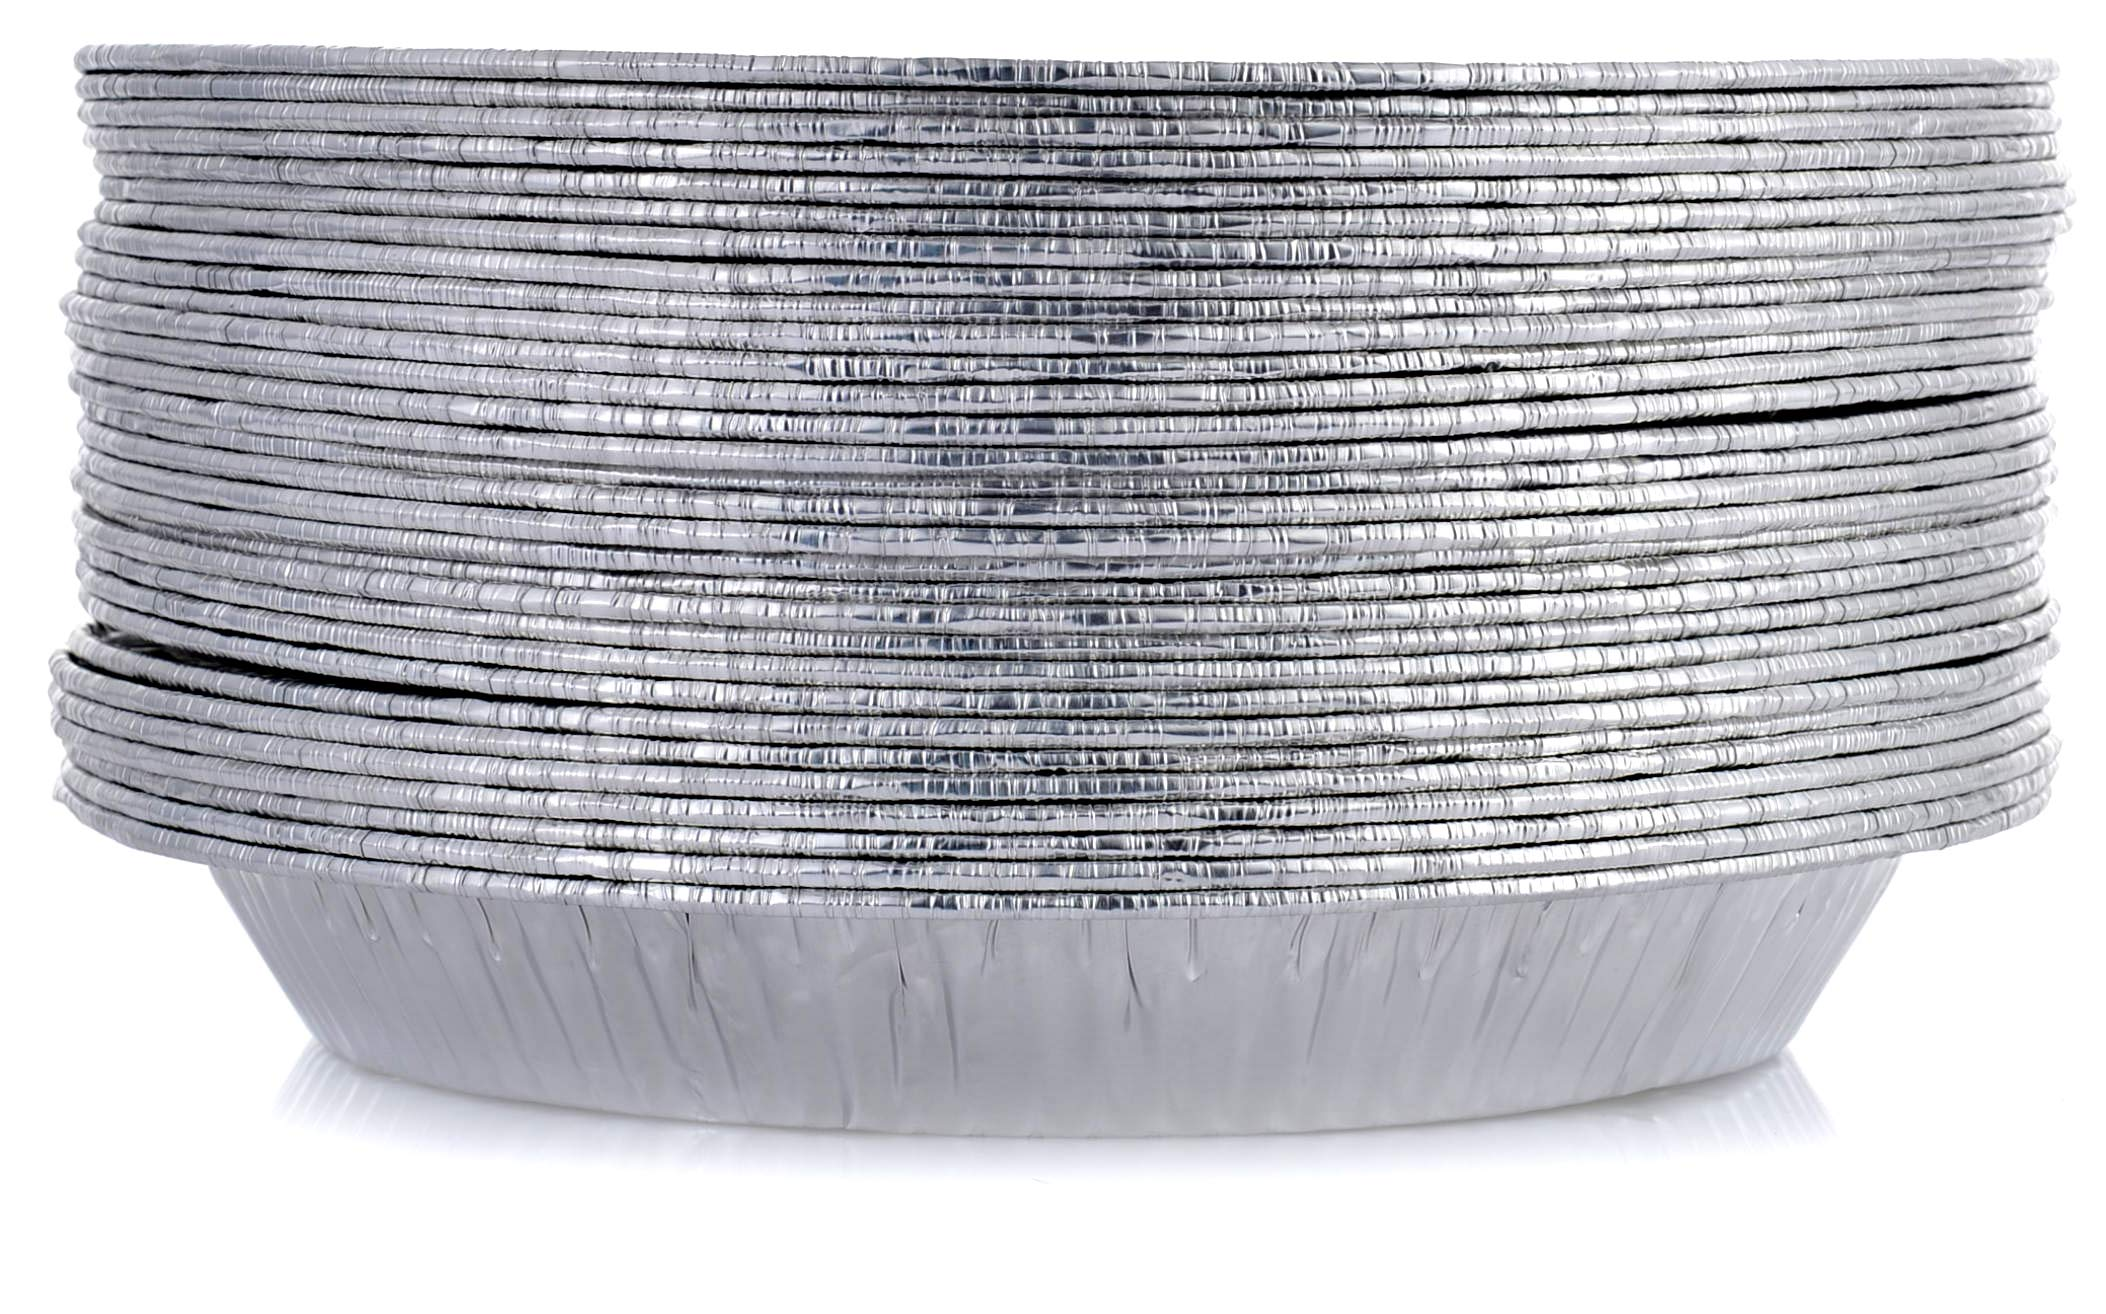 DOBI 9'' Pie Pans (30 Pack) - Disposable Aluminum Foil Pie Plates, Standard Size, 9'' x 1.25''